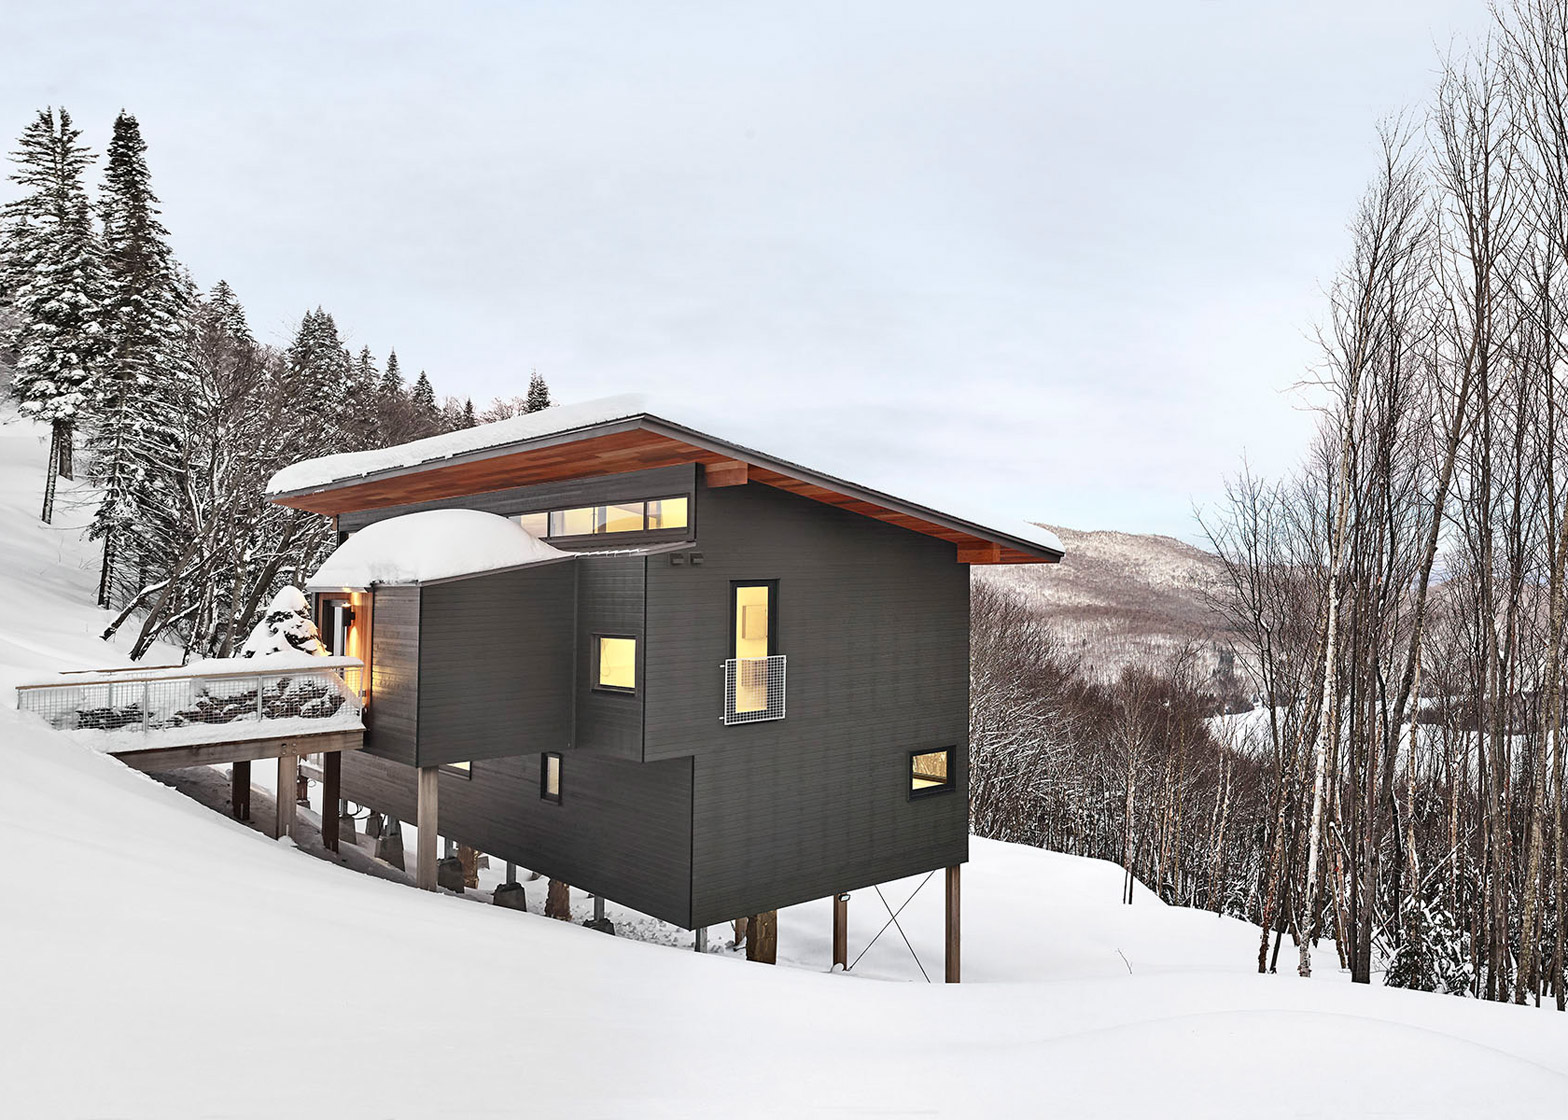 Laurentian Ski Chalet in Quebec, Canada by Robitaille Curtis architecture